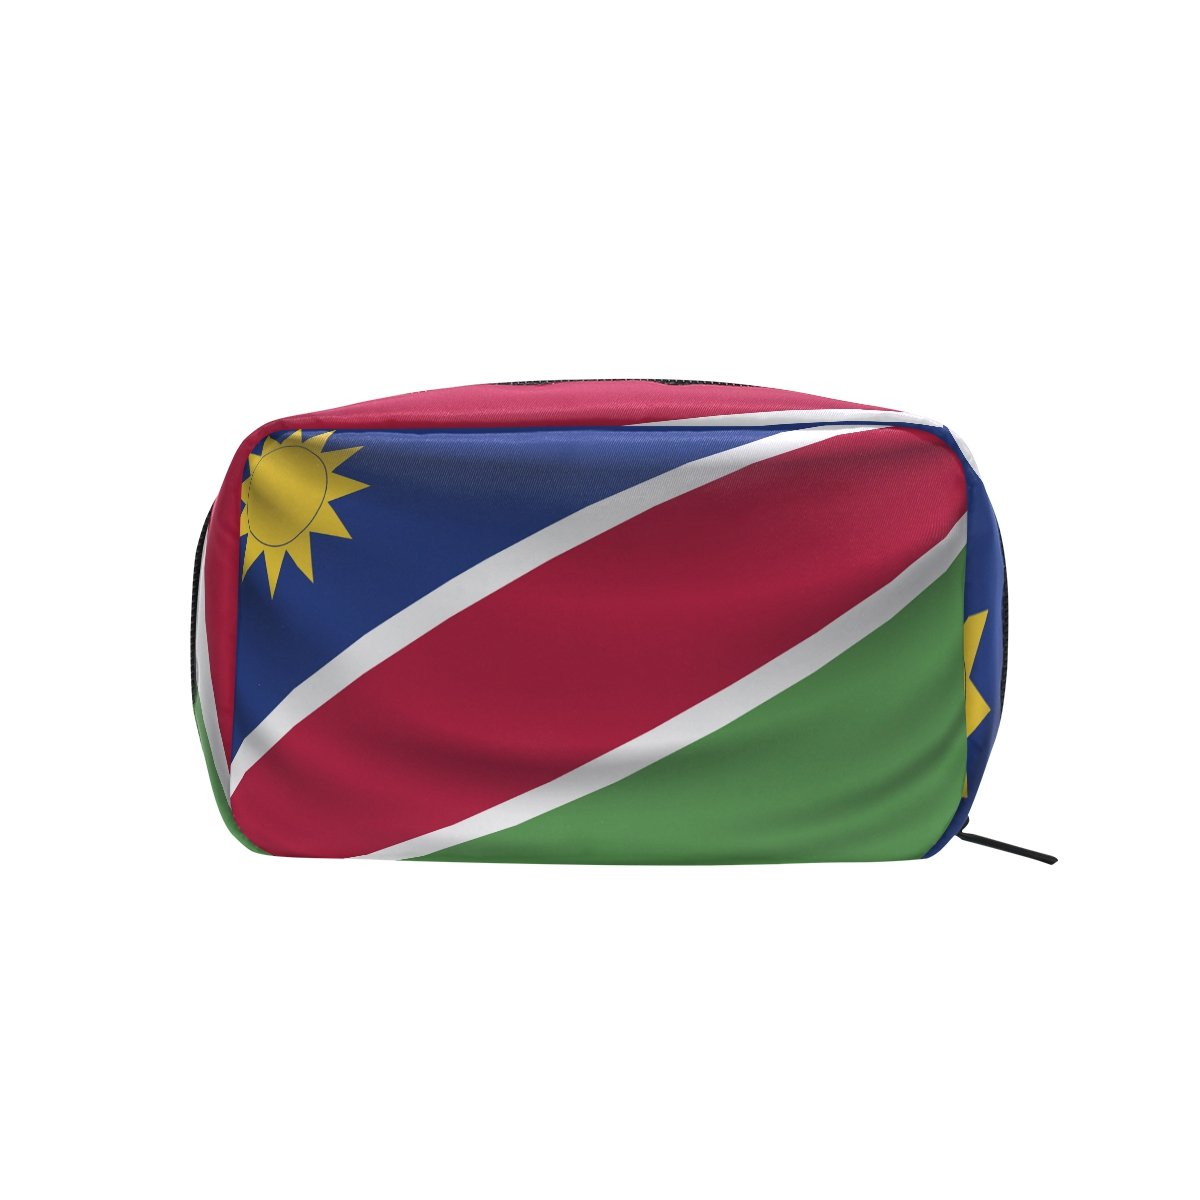 Namibia Flag Makeup Bag Multi Compartment Pouch Storage Cosmetic Bags